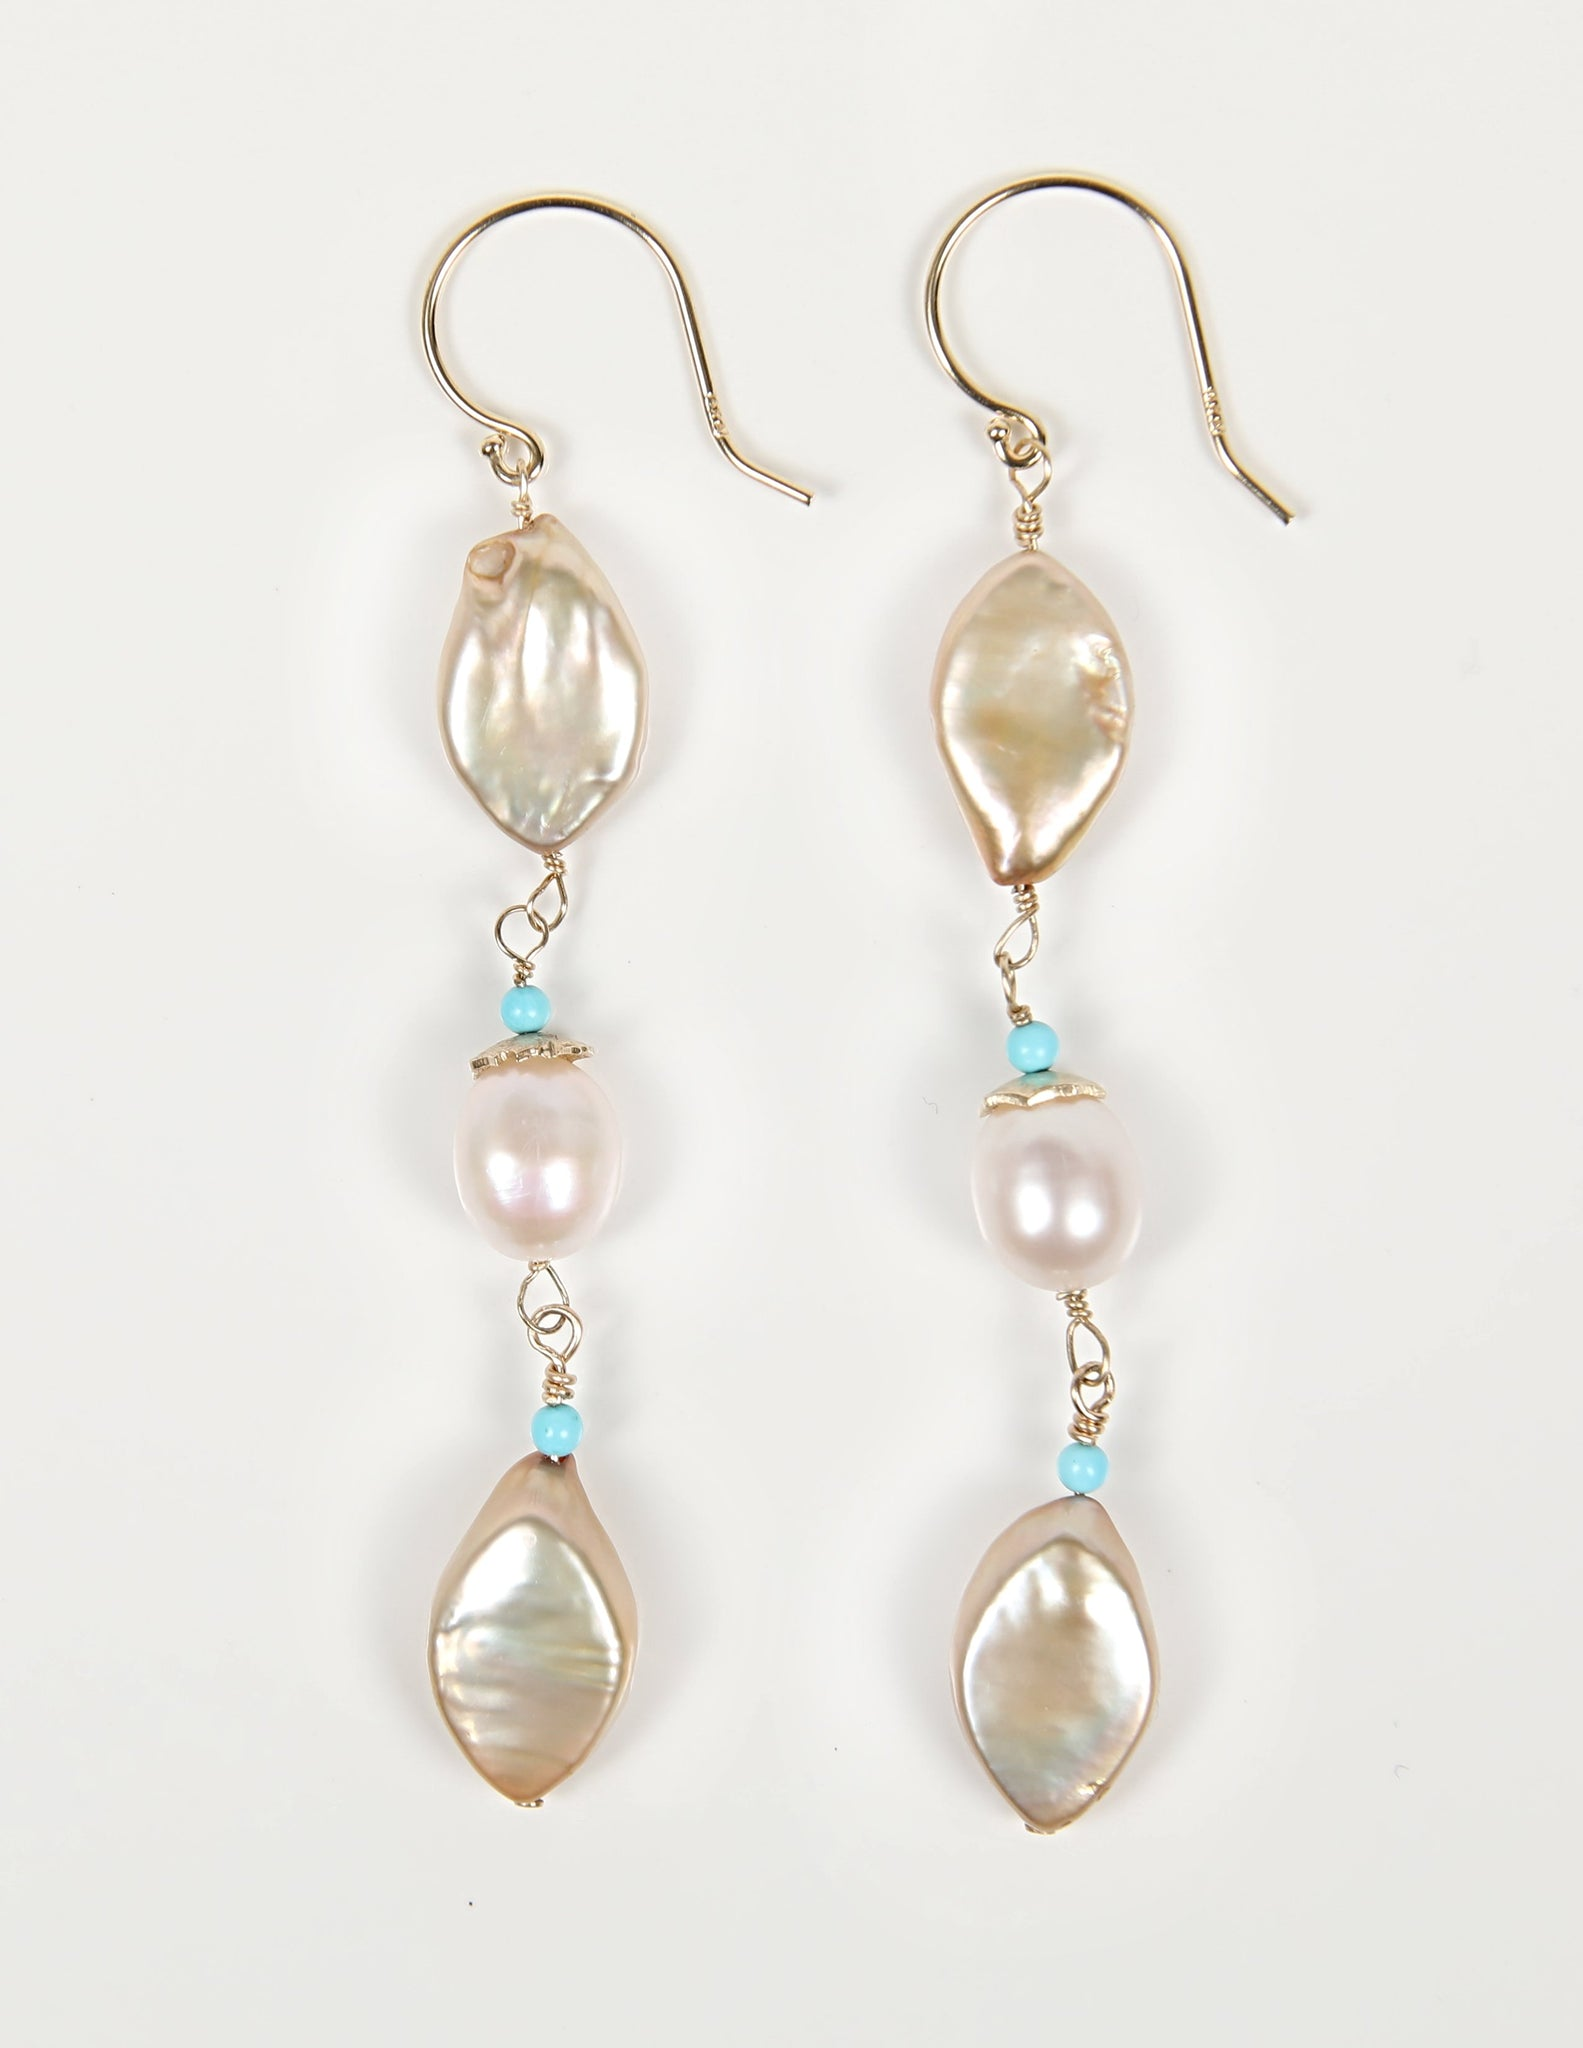 White Orchid Studios | Made in the USA | Handcrafted couture jewelry inspired by nature. |  Champagne, marquis freshwater pearls, white rice pearls, Sleeping Beauty turquoise, 14kt yellow gold earwires. $250